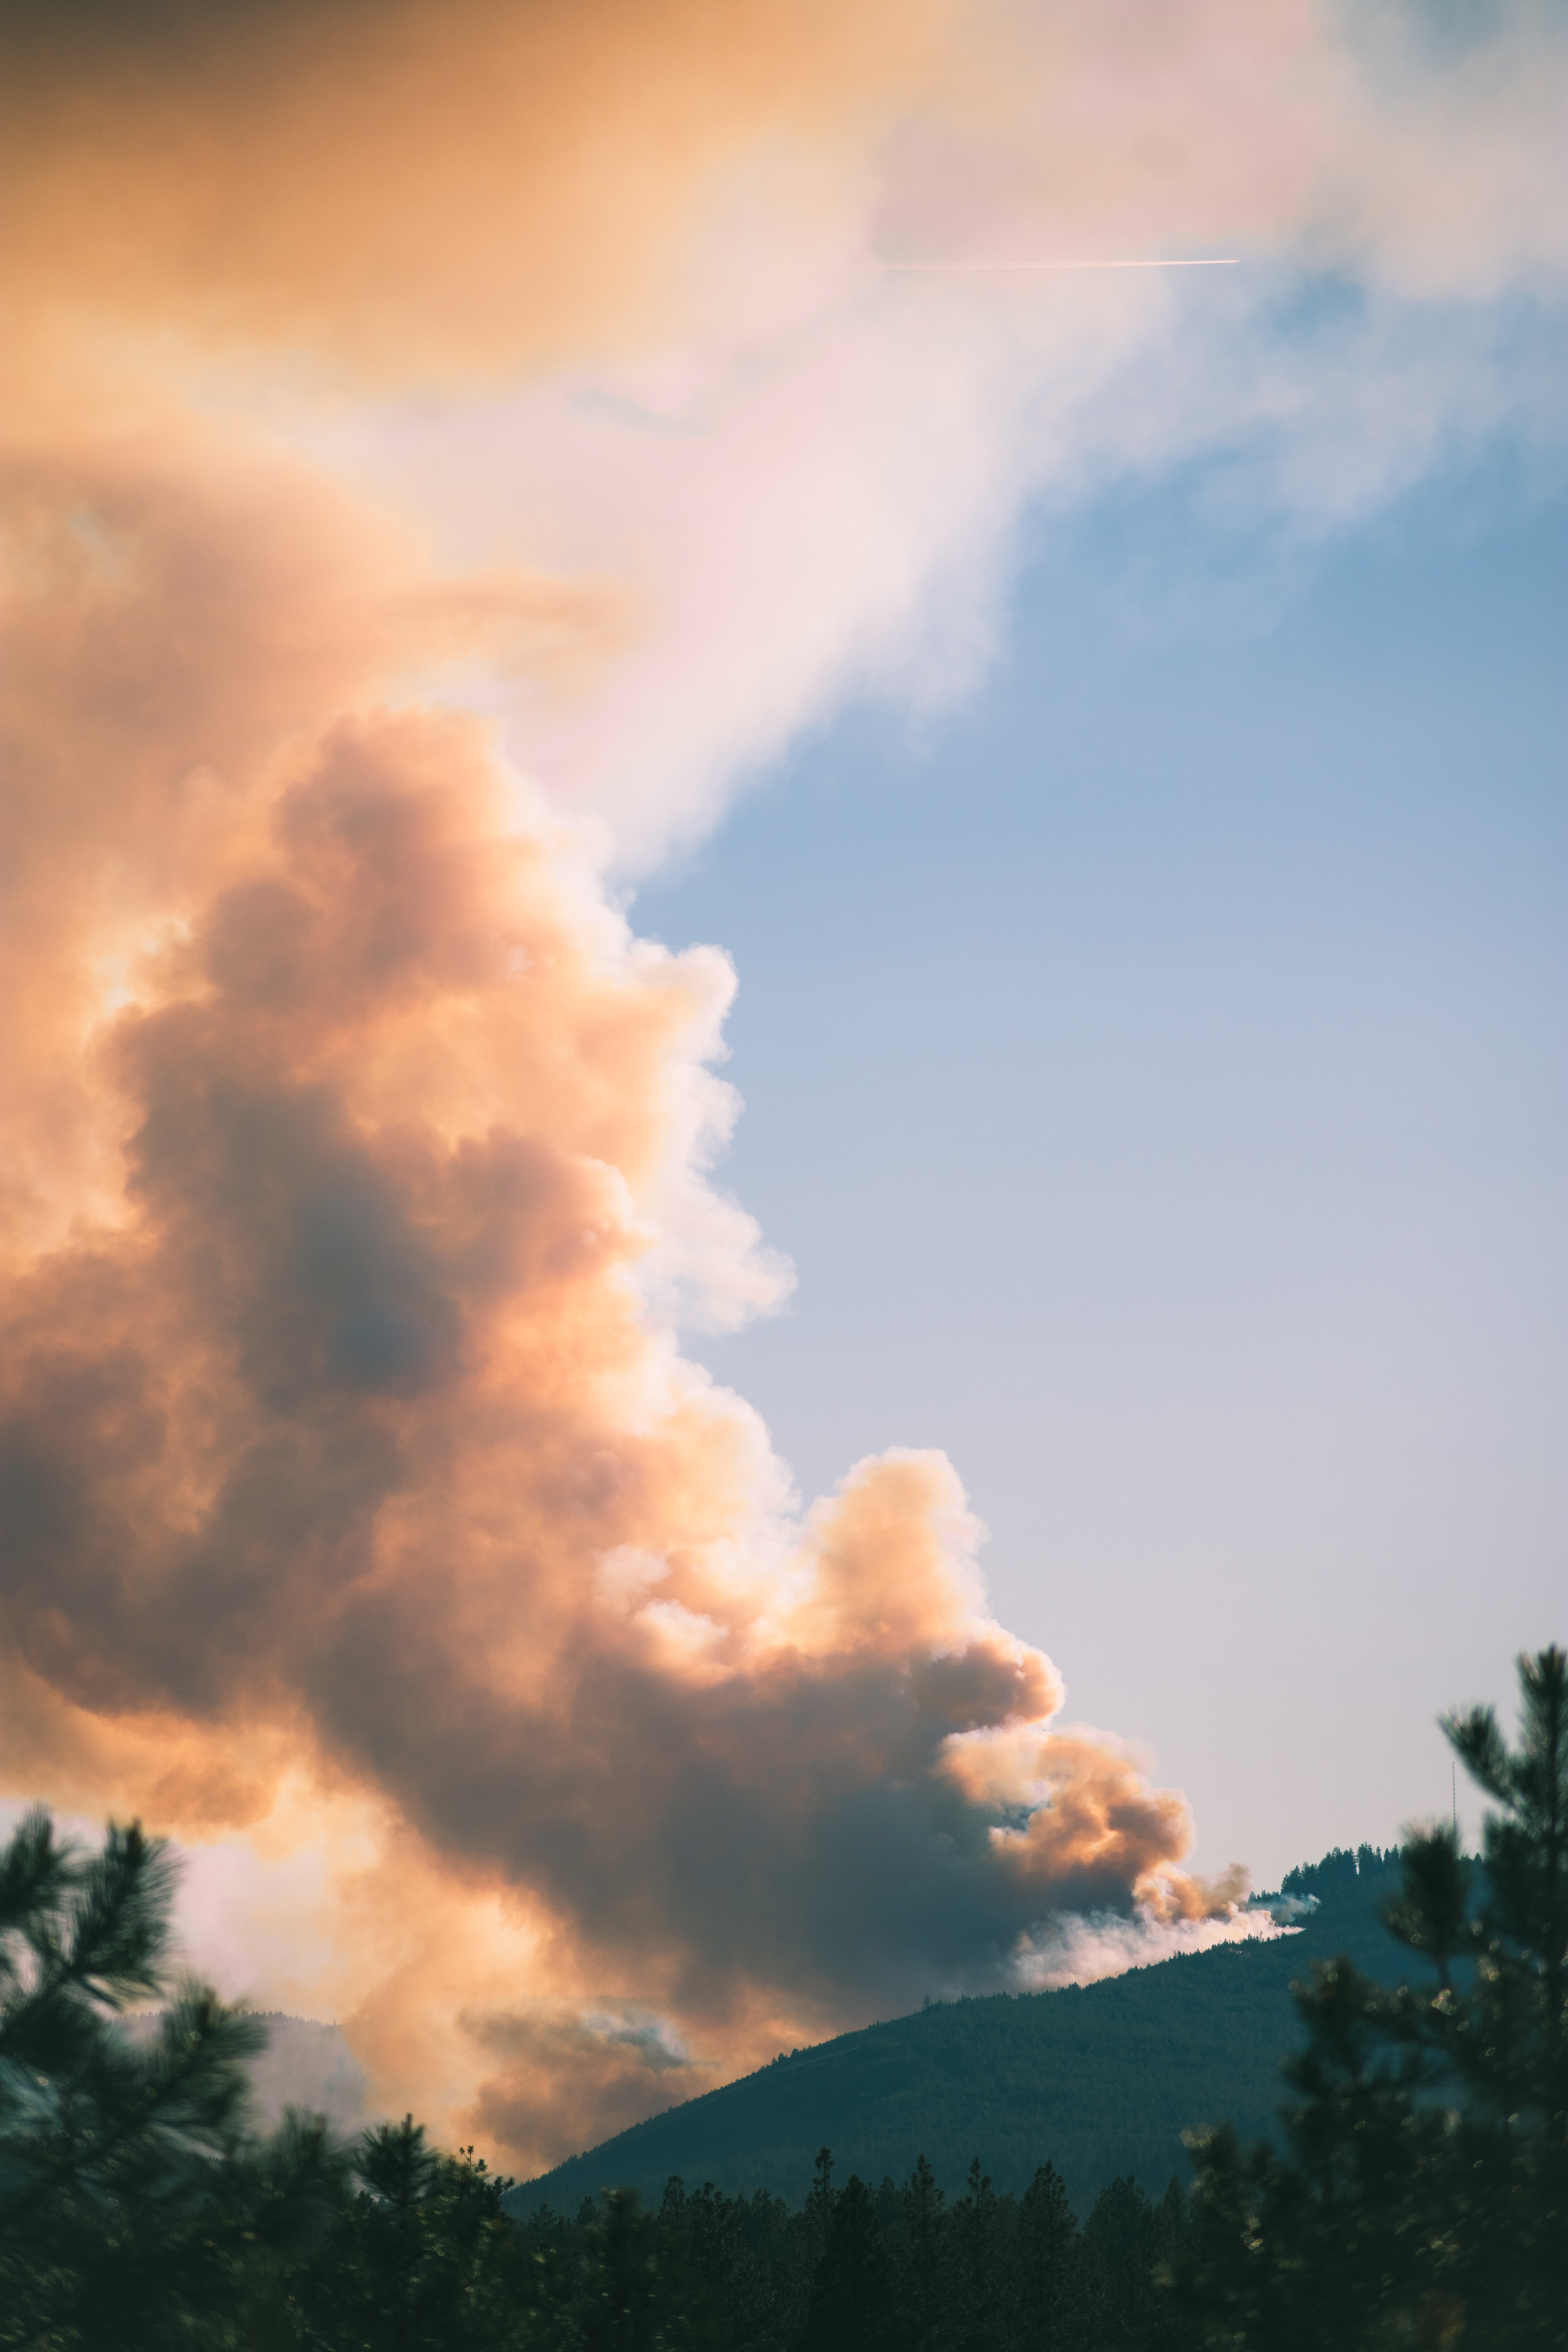 A heavy cloud of smoke rising up from a burning forest in the distance